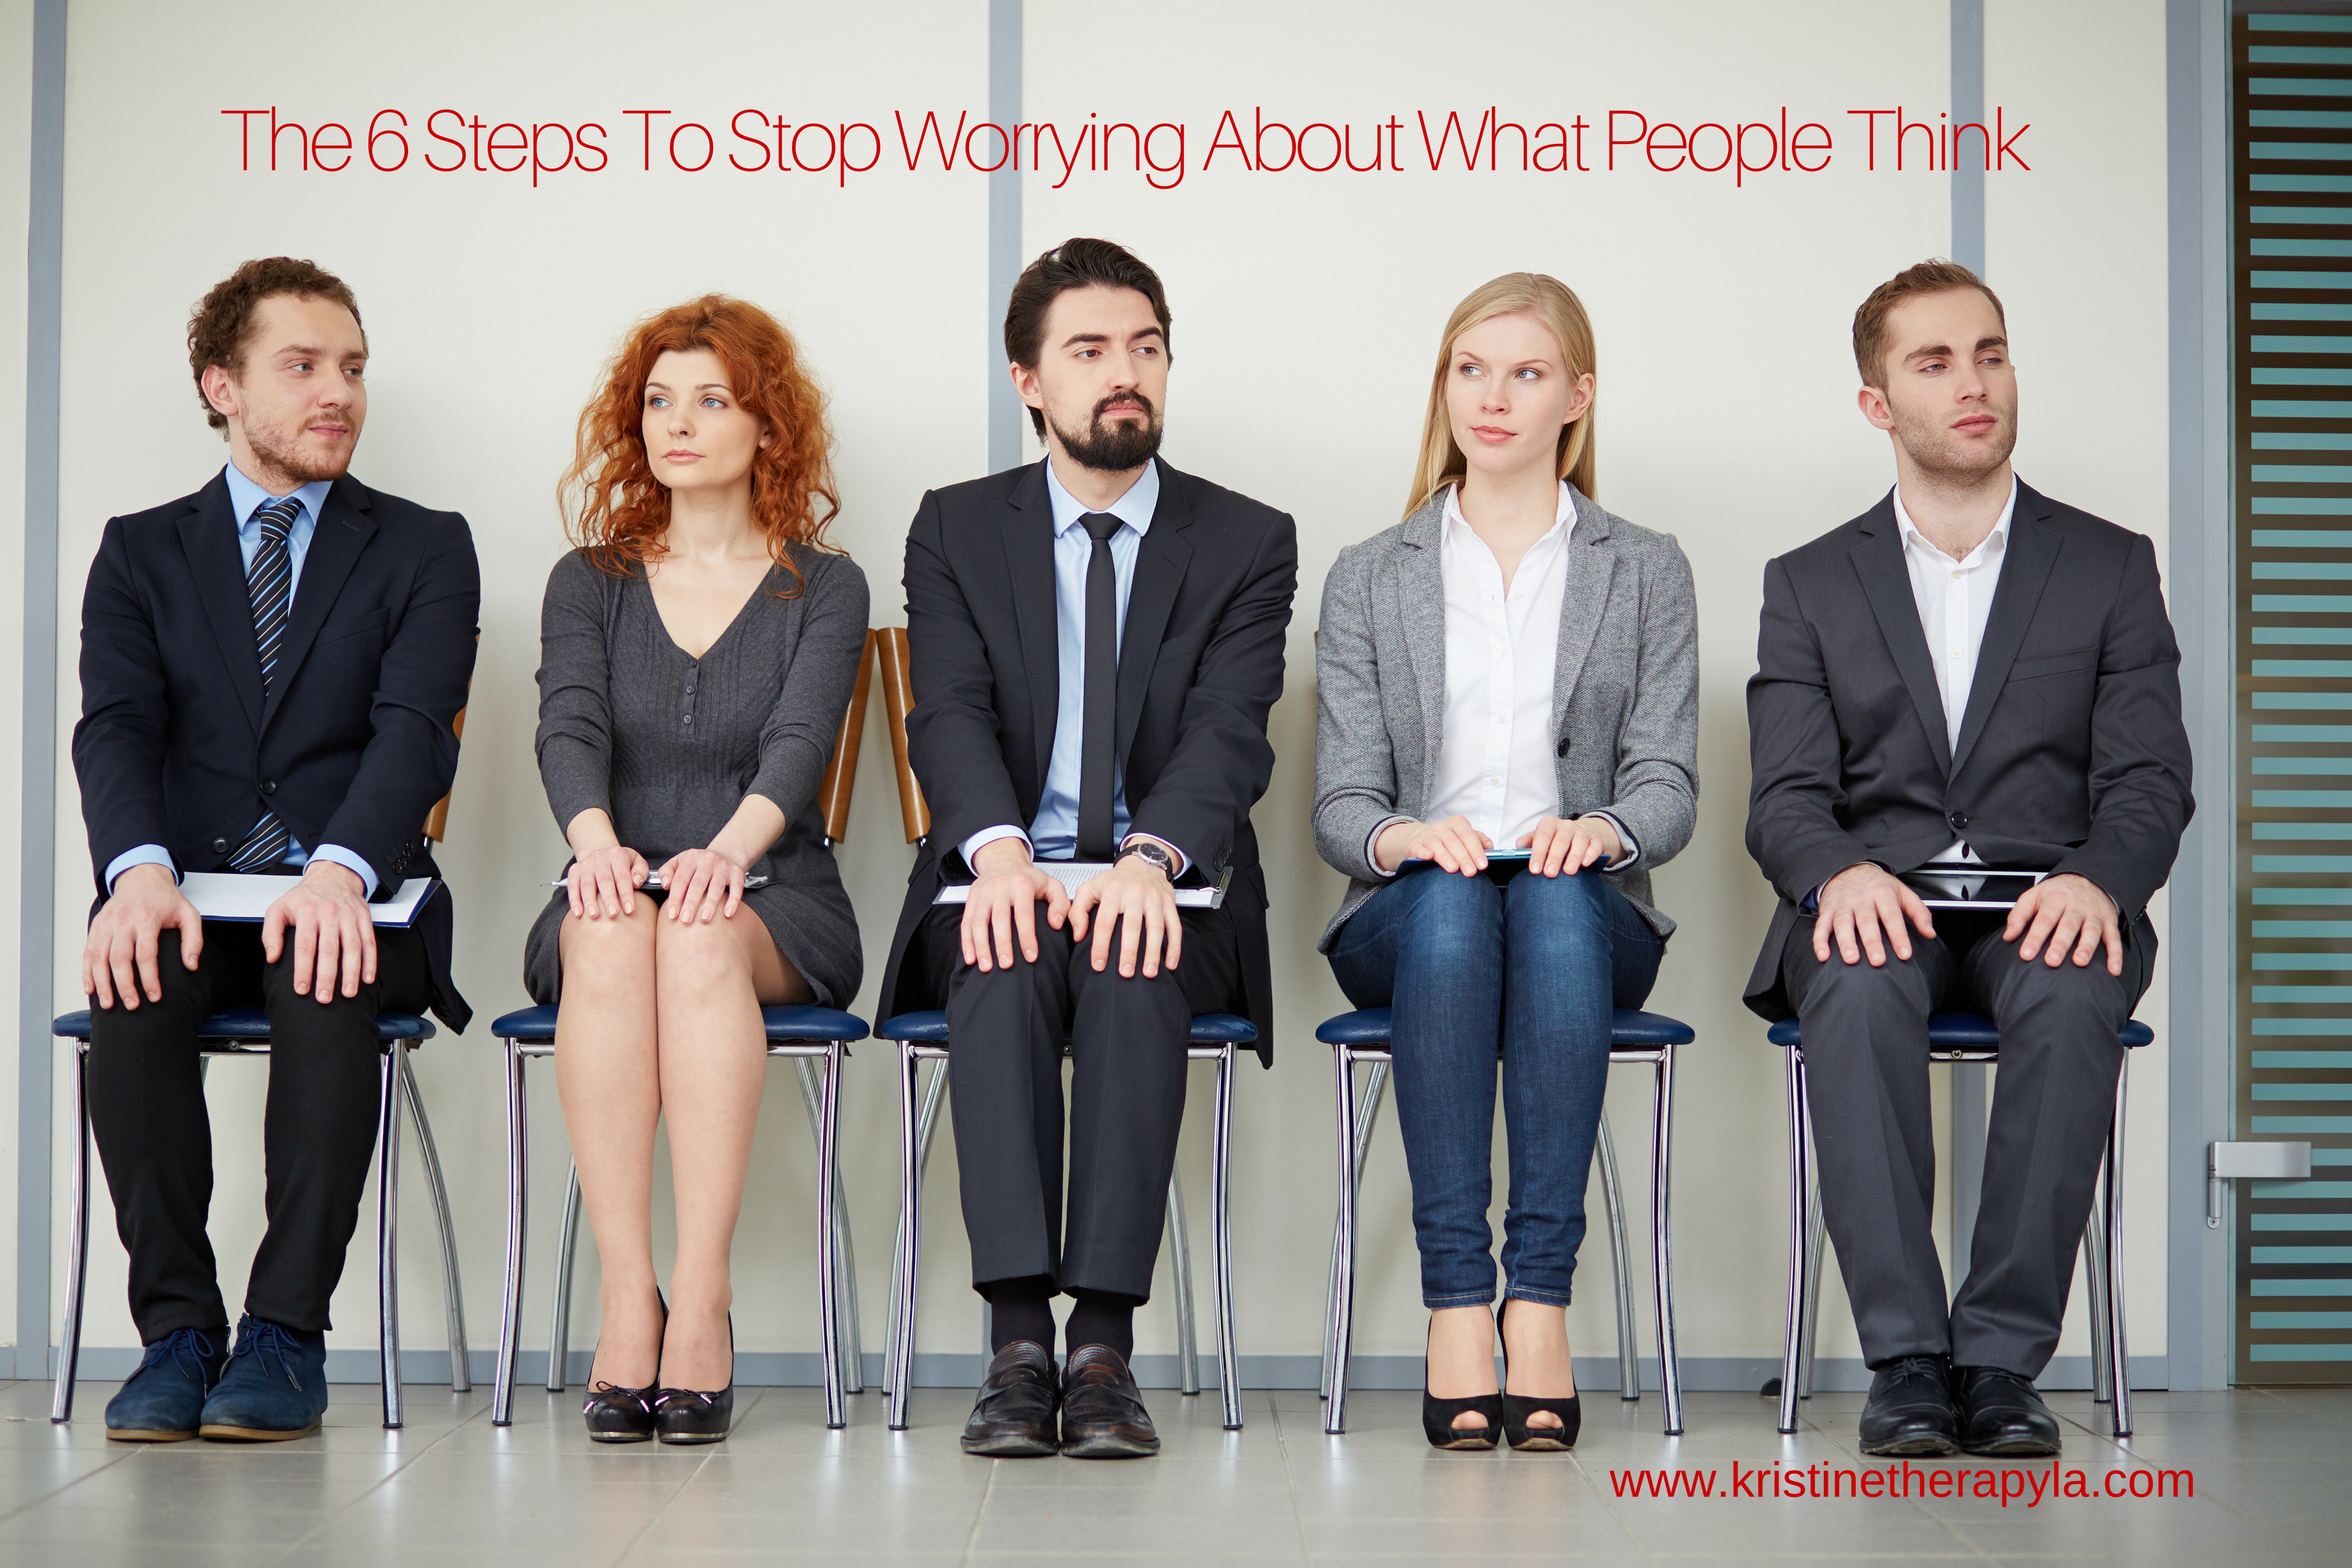 The 6 Steps To Stop Worrying About What People Think